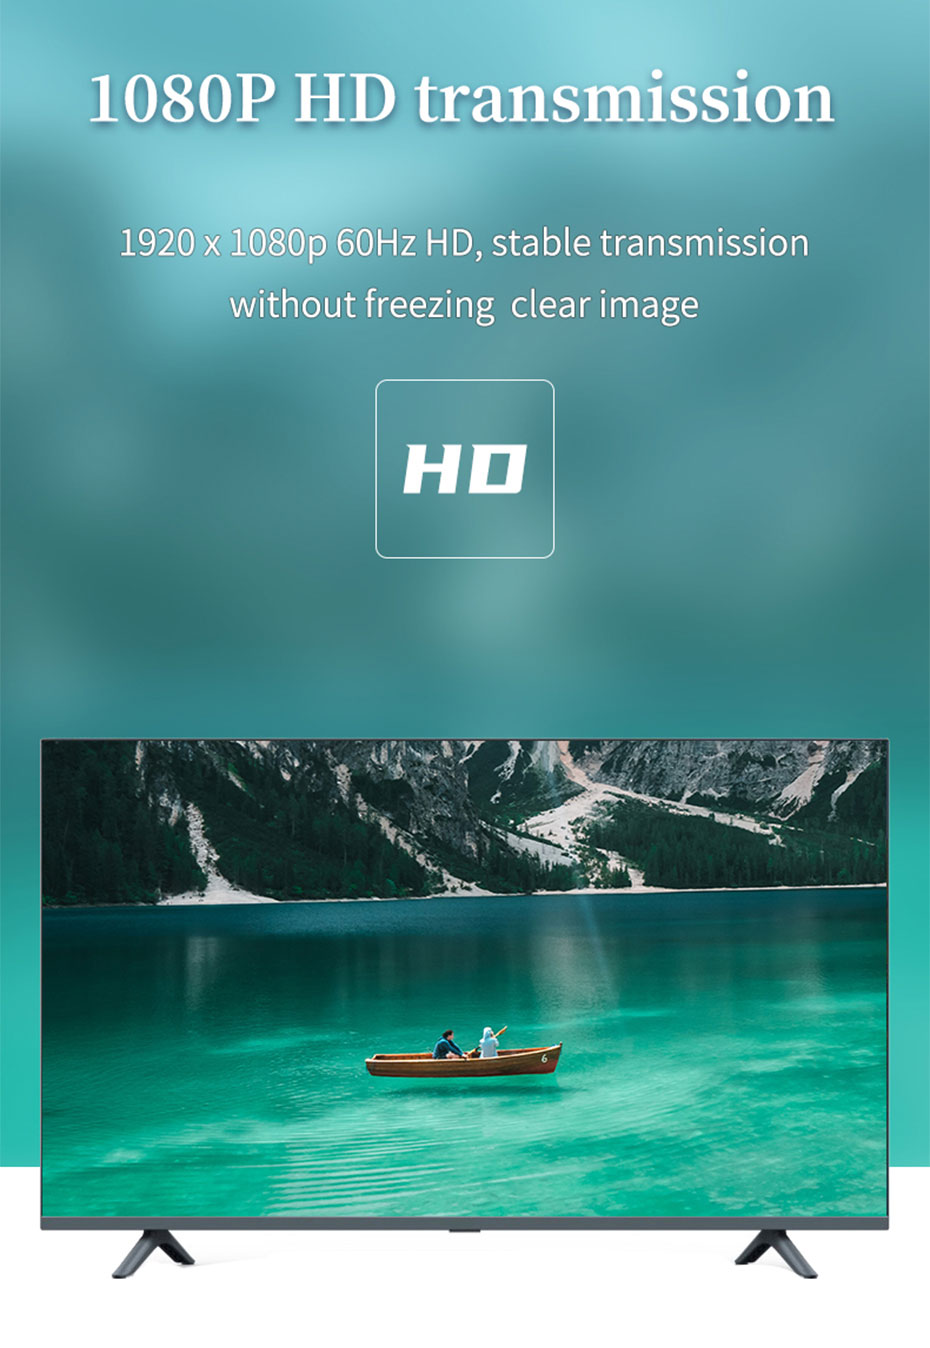 DP to HDMI converter DH supports 1920*1080p@60Hz HD resolution